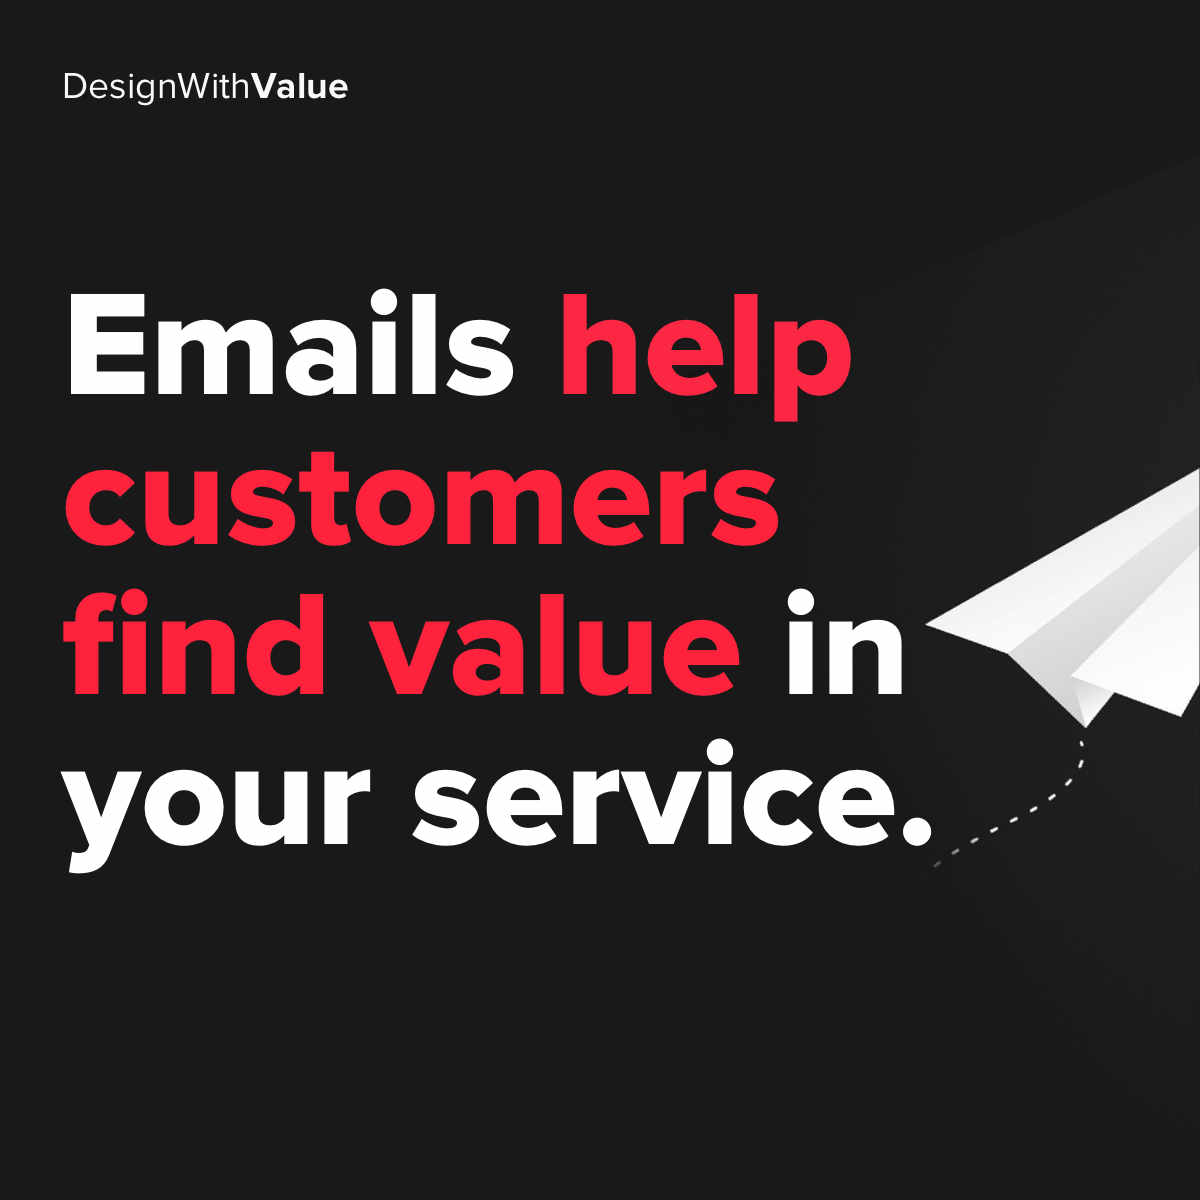 Emails help customers find value in your service.